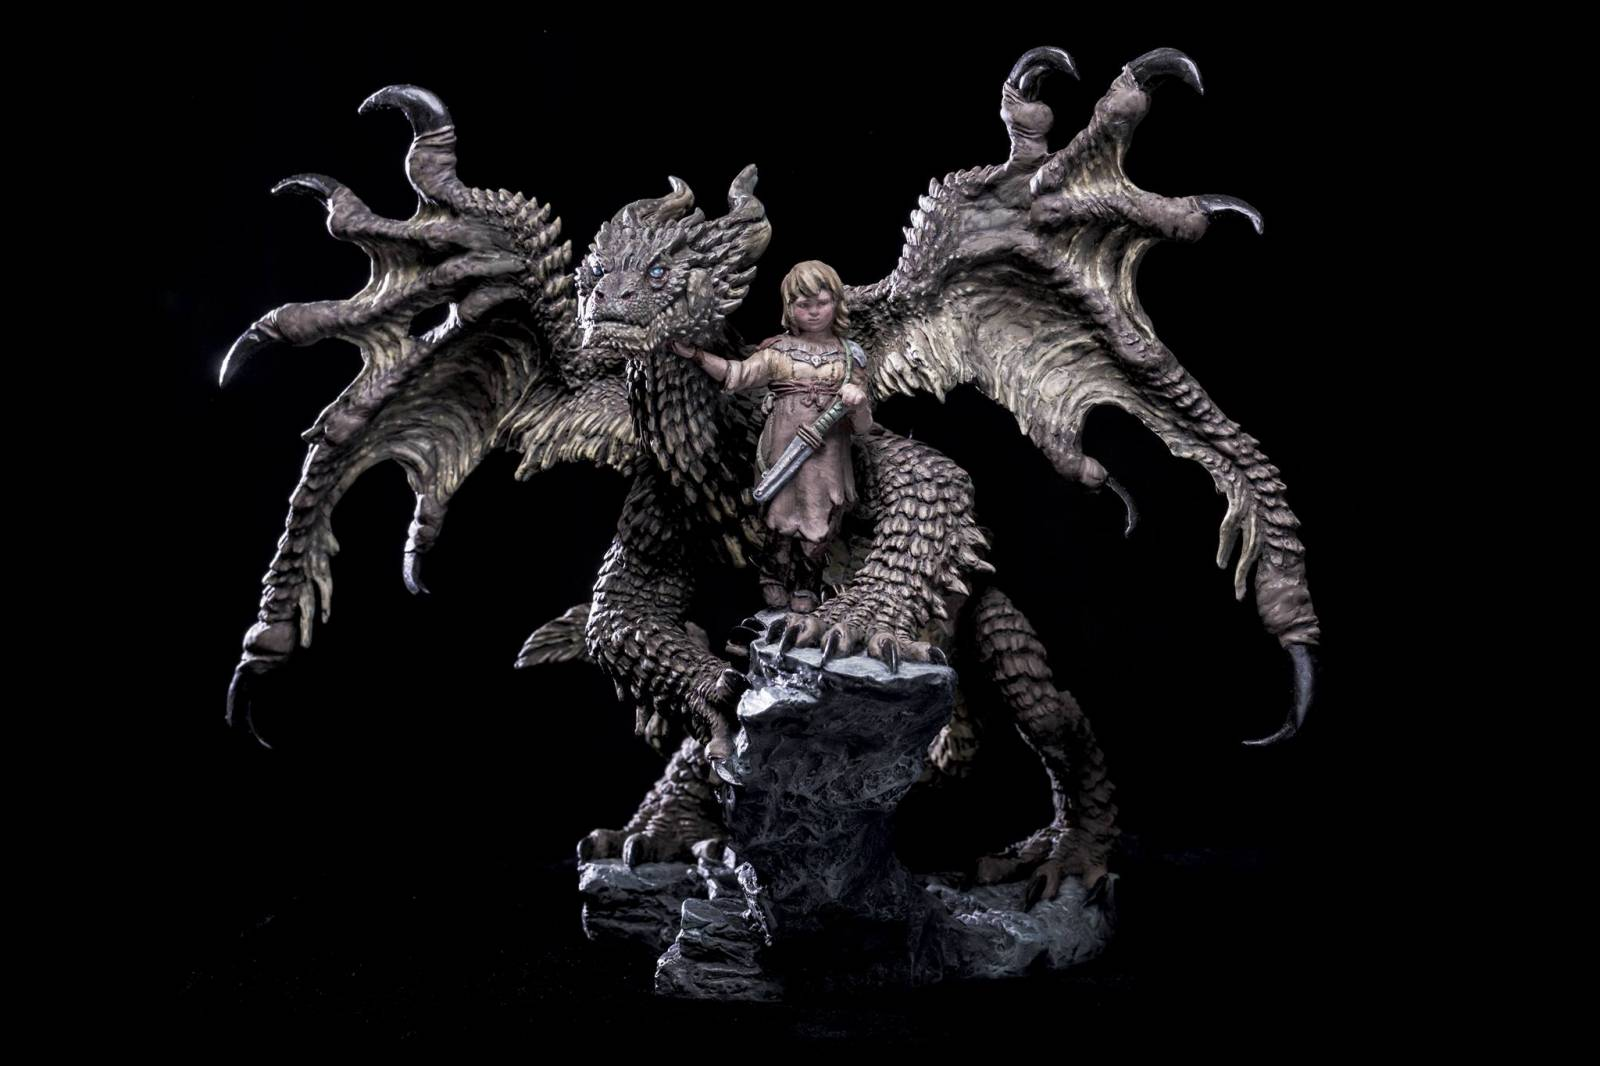 The Shiflett Bros. Project